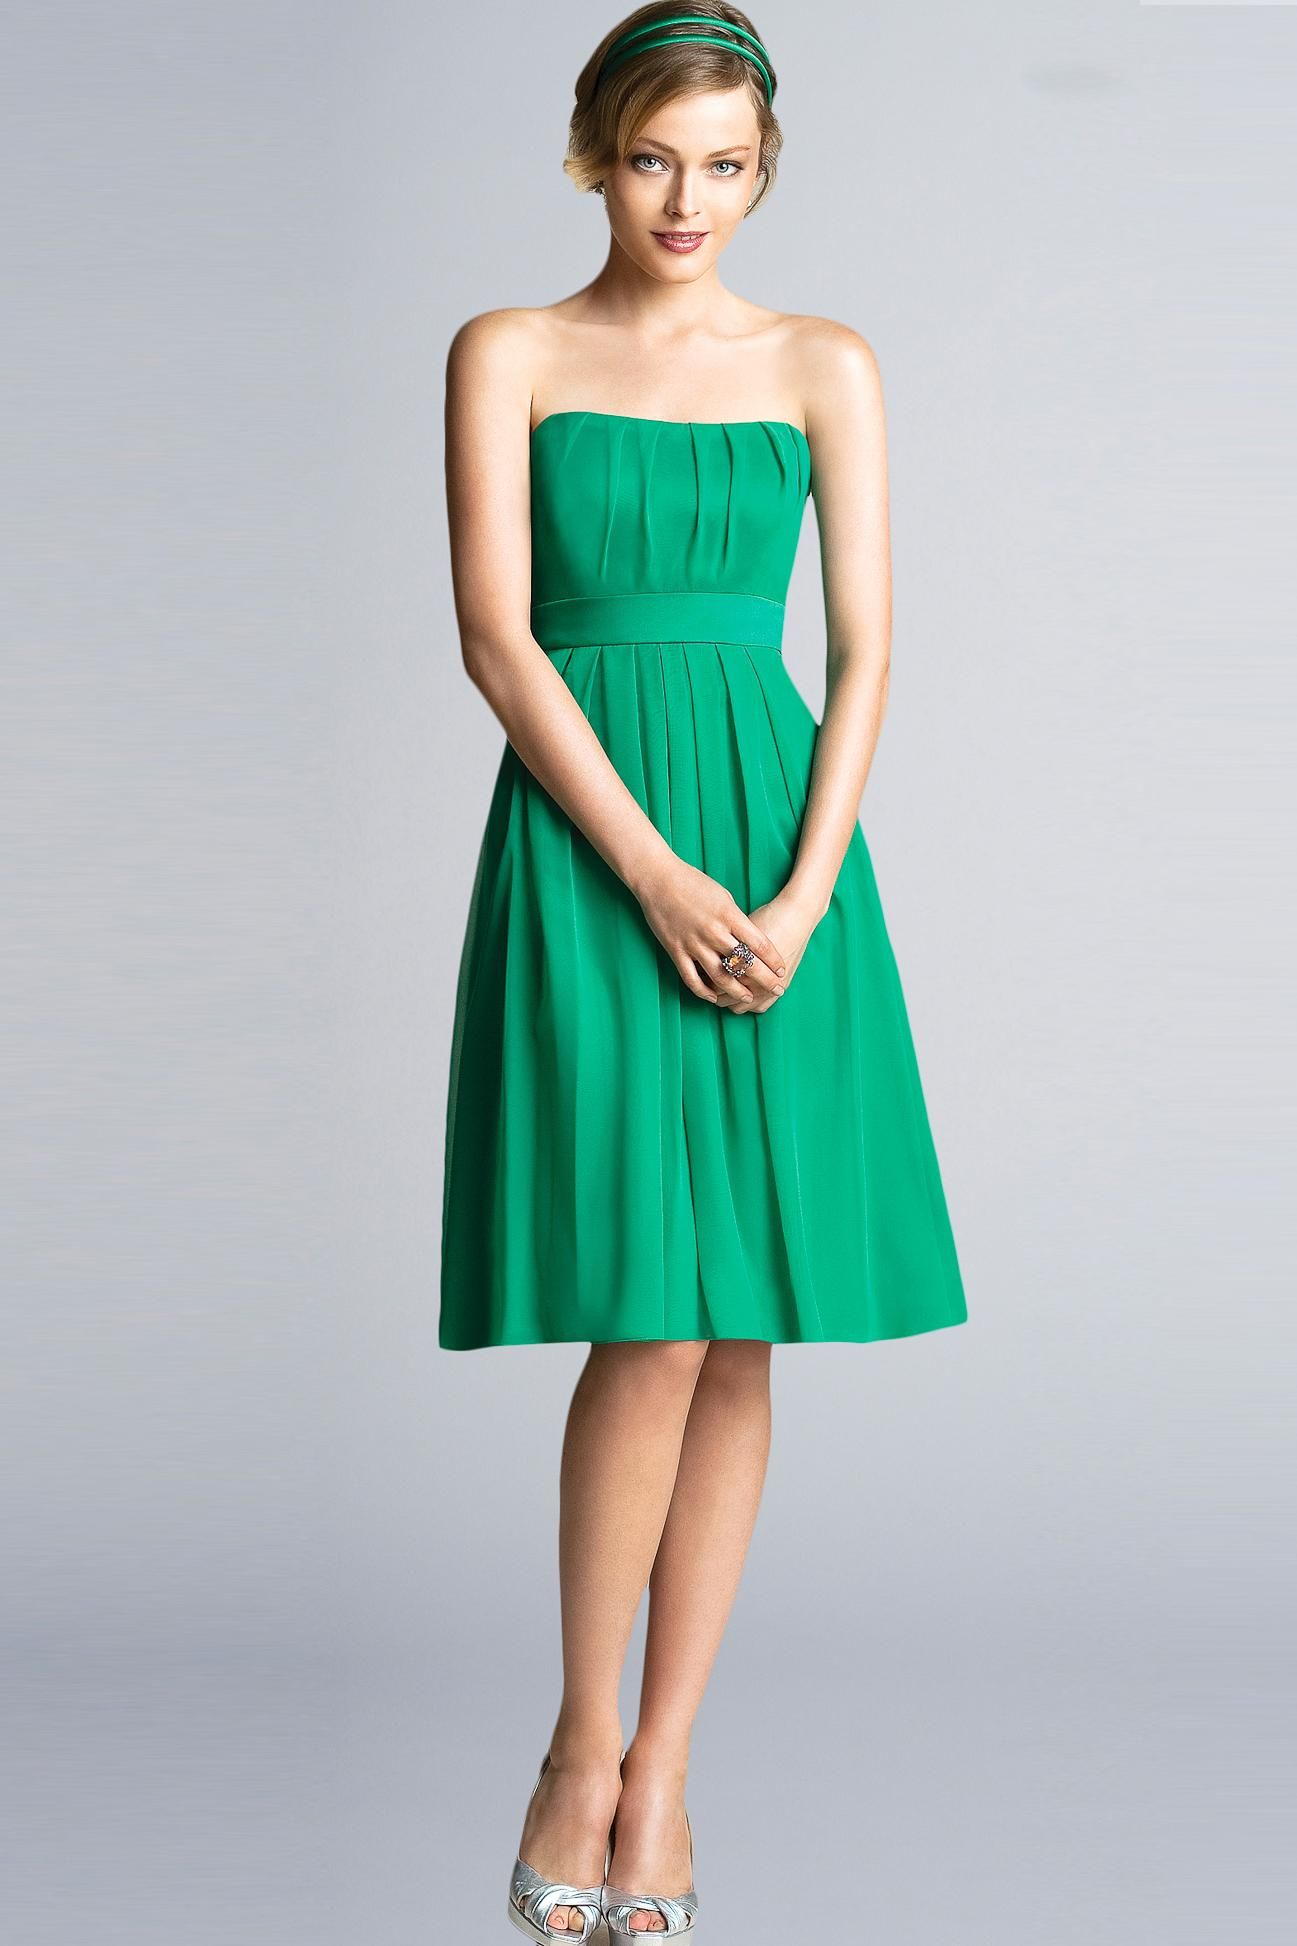 for a green dress this is fab | Dresses | Pinterest | Fashion